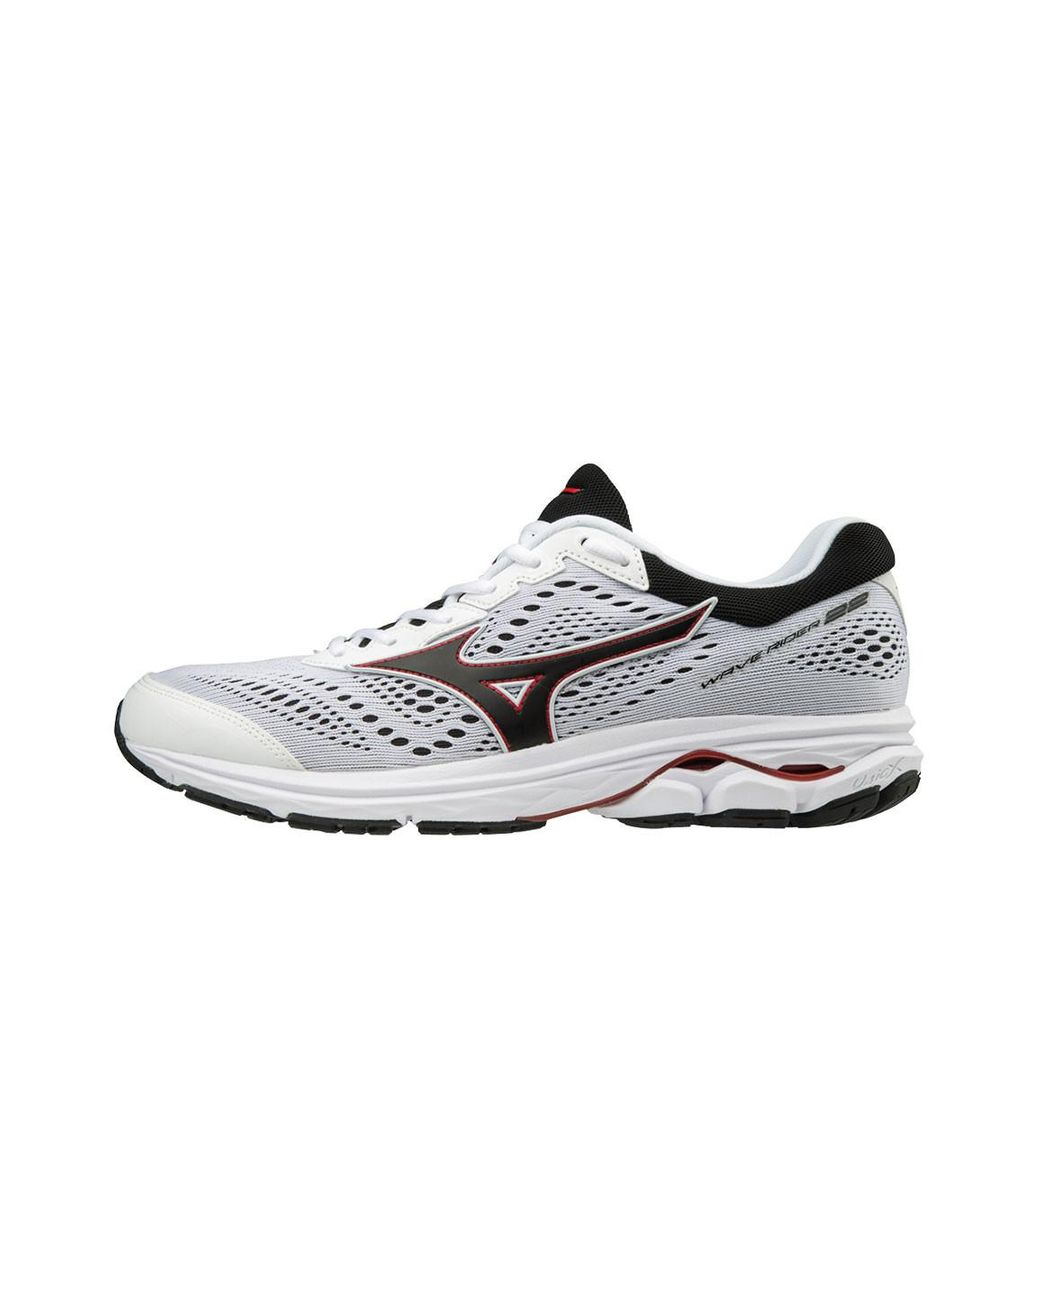 tenis mizuno wave prophecy 5 usa mexico war future hombre